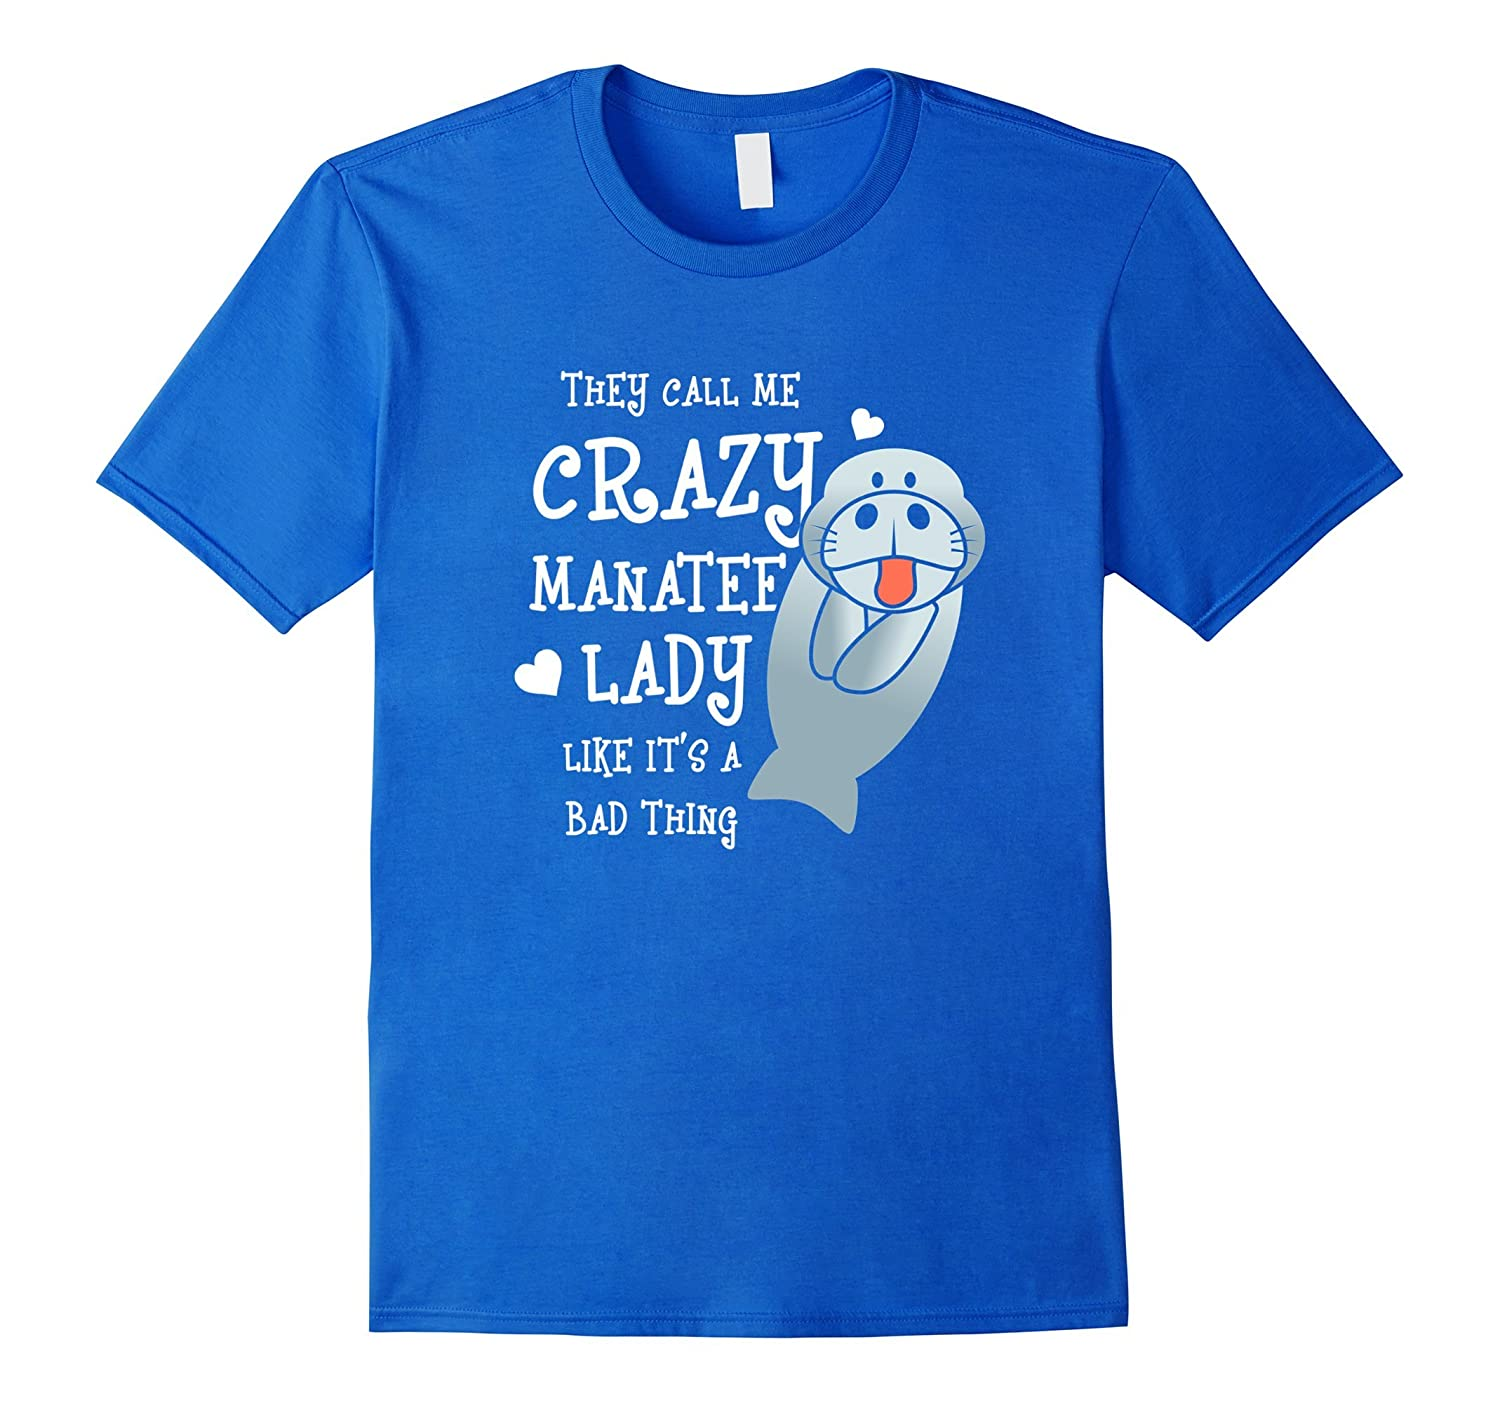 They call me Crazy Manatee lady like it's a bad thing TShirt